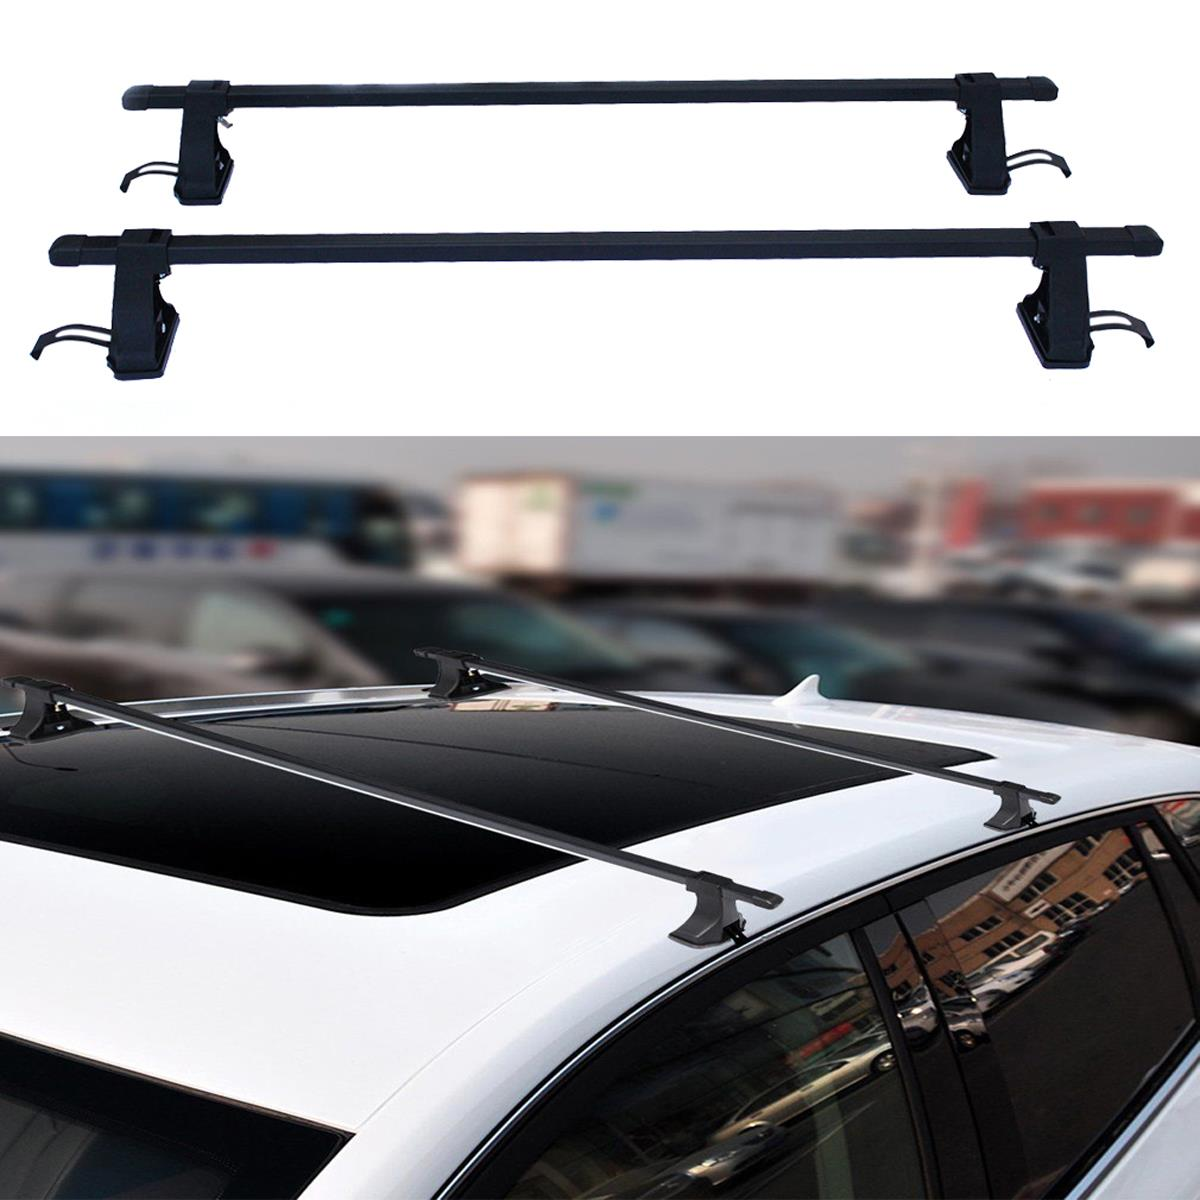 54 Universal Top Roof Rack Cross Bars Luggage For 4 Door Car Suv Truck Jeep Ebay